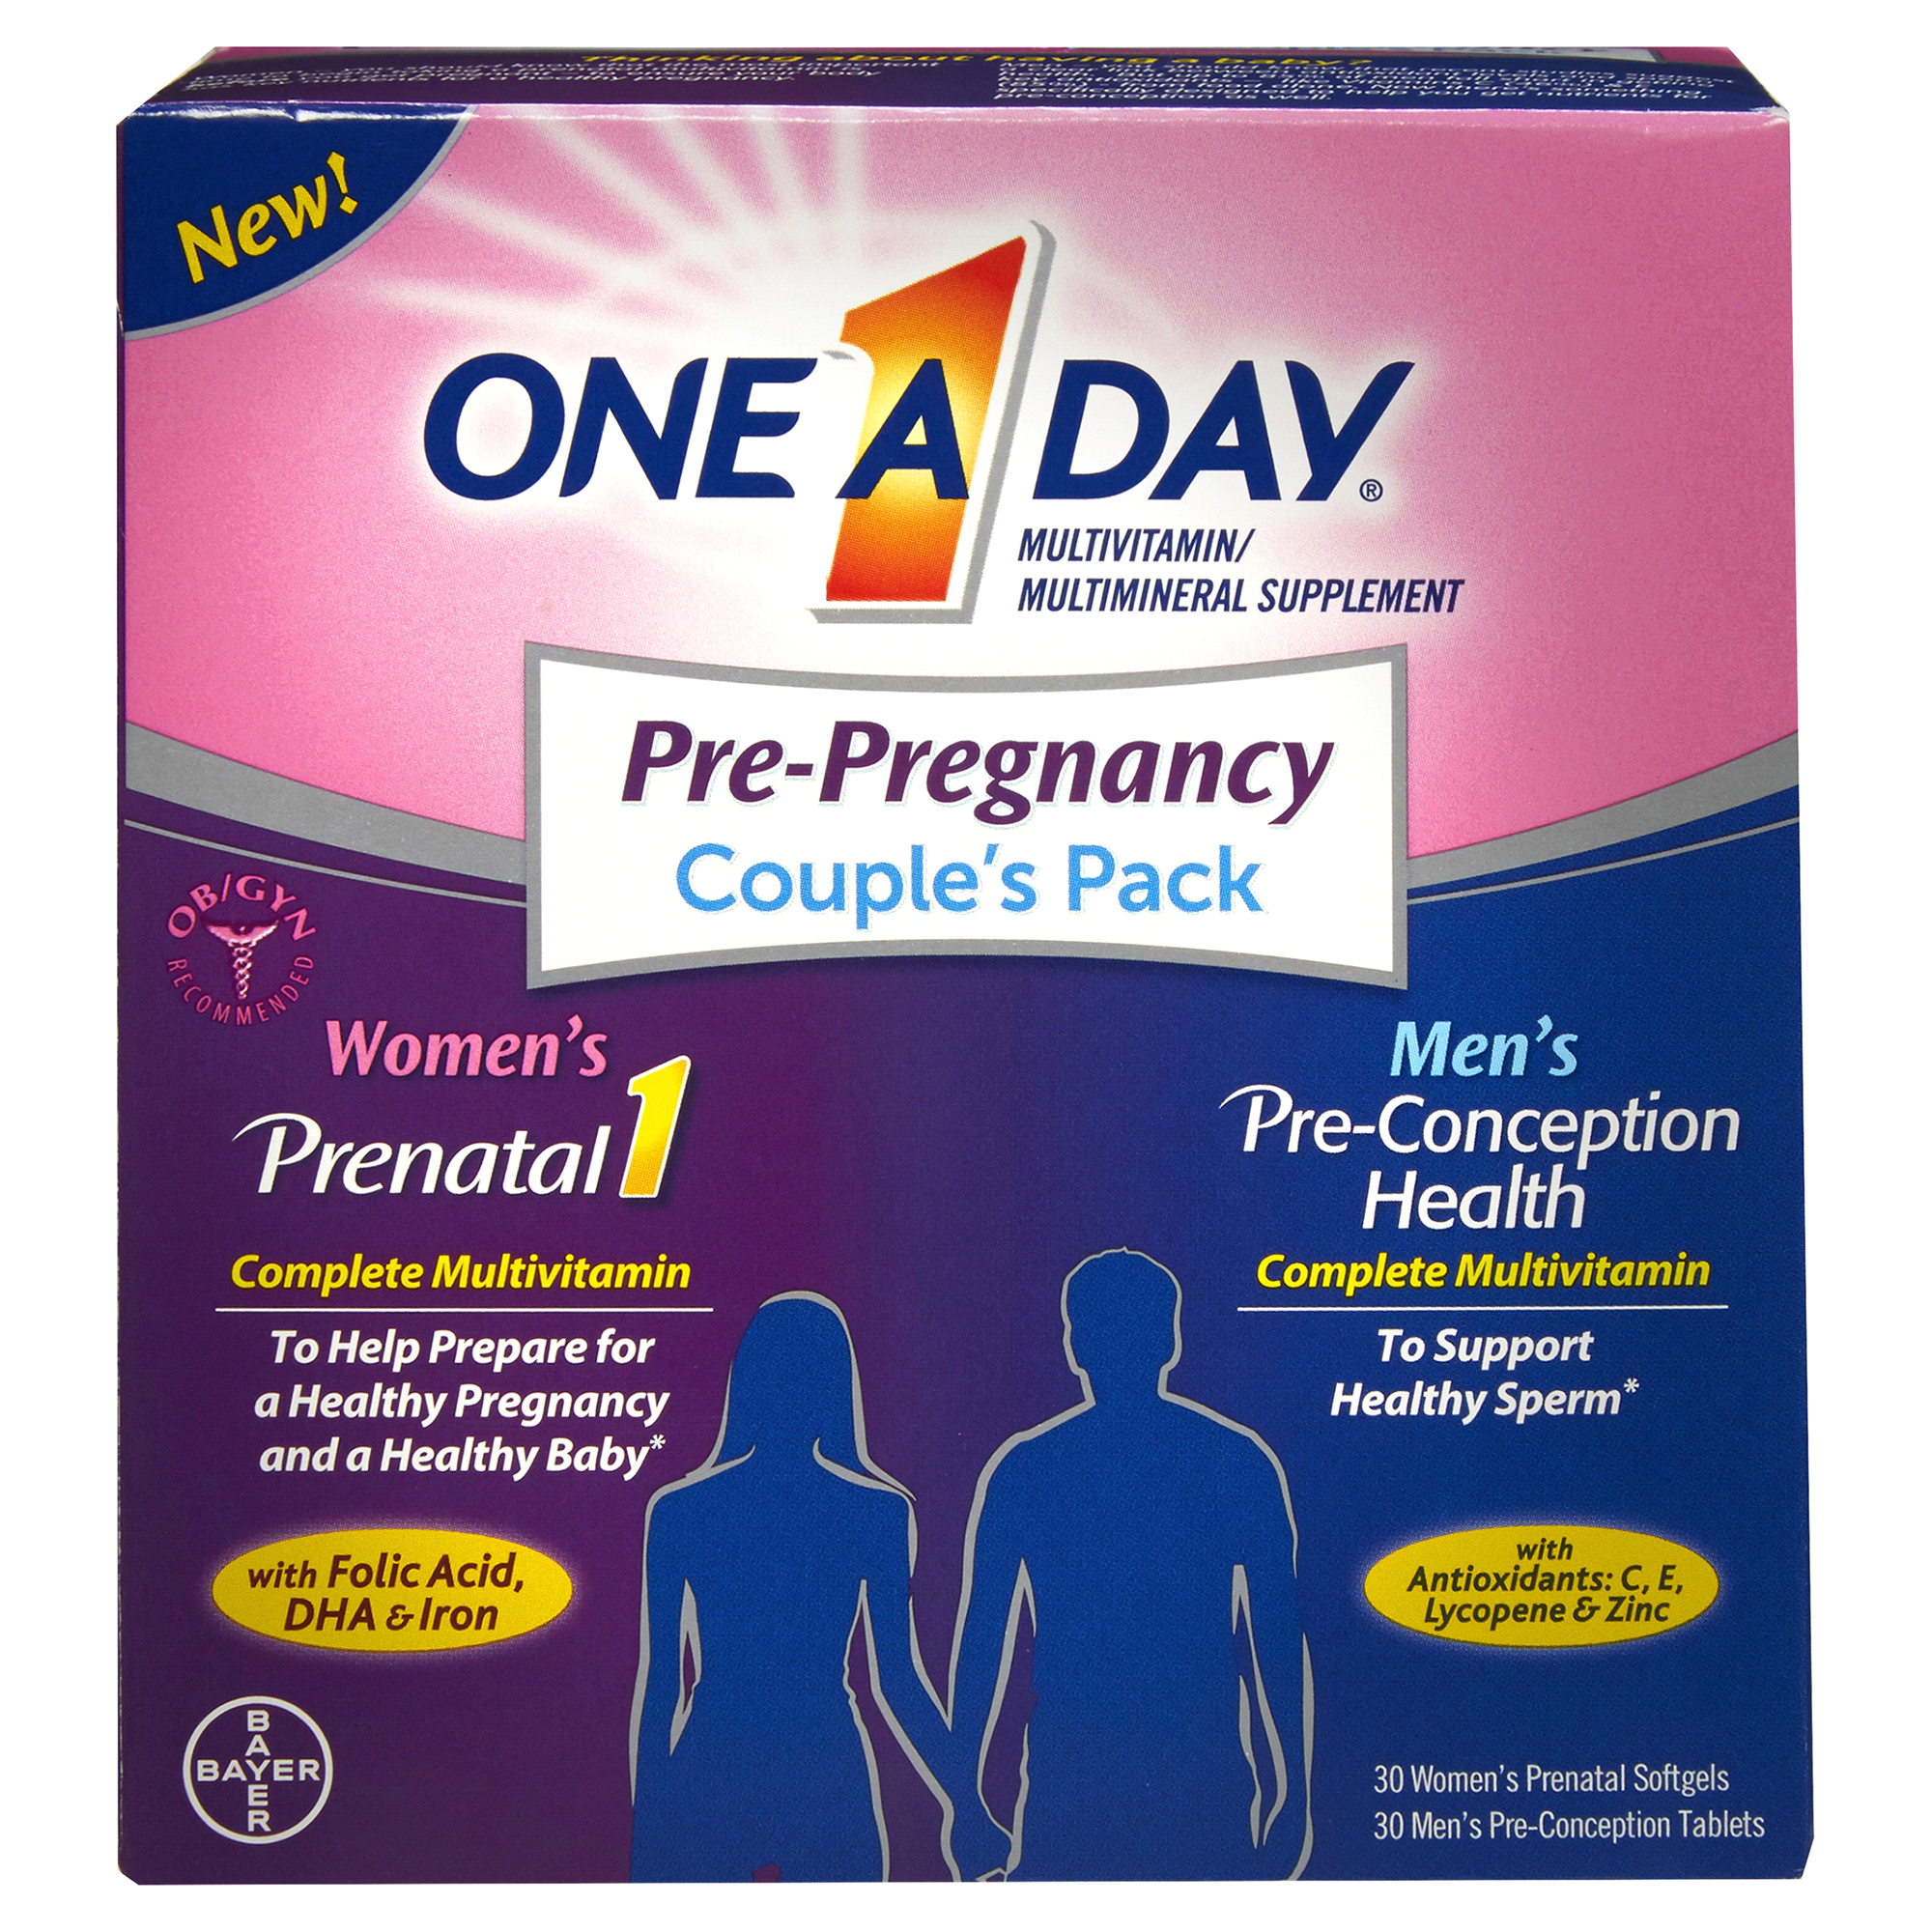 One A Day Pre Pregnancy Couples Pack Complete Multivitamins 60 Ct Fluke8217s Five New Infrared Cameras